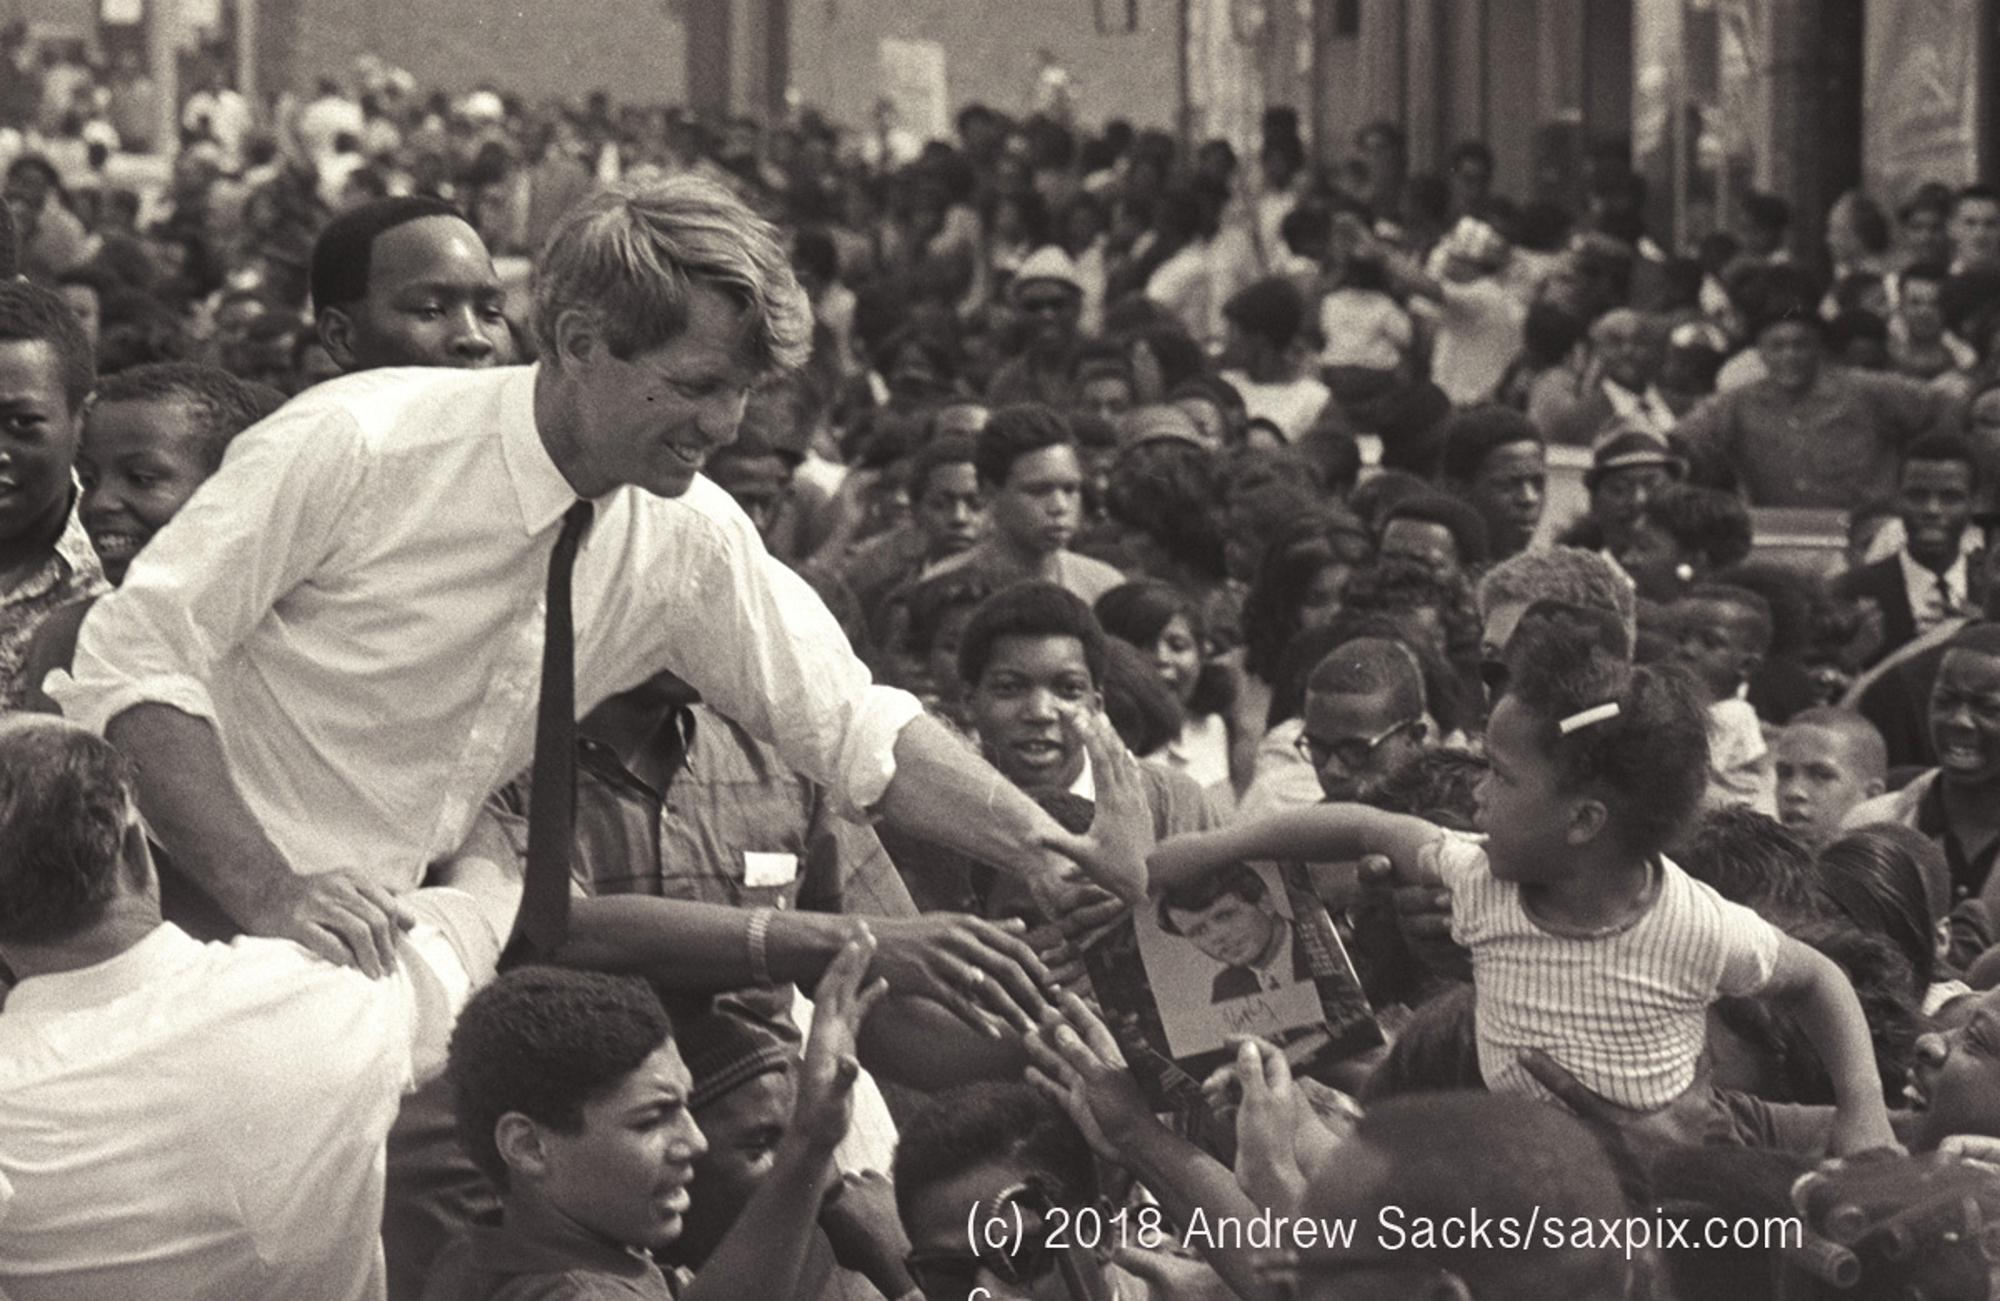 1968 : Robert Kennedy Campaigns in Detroit